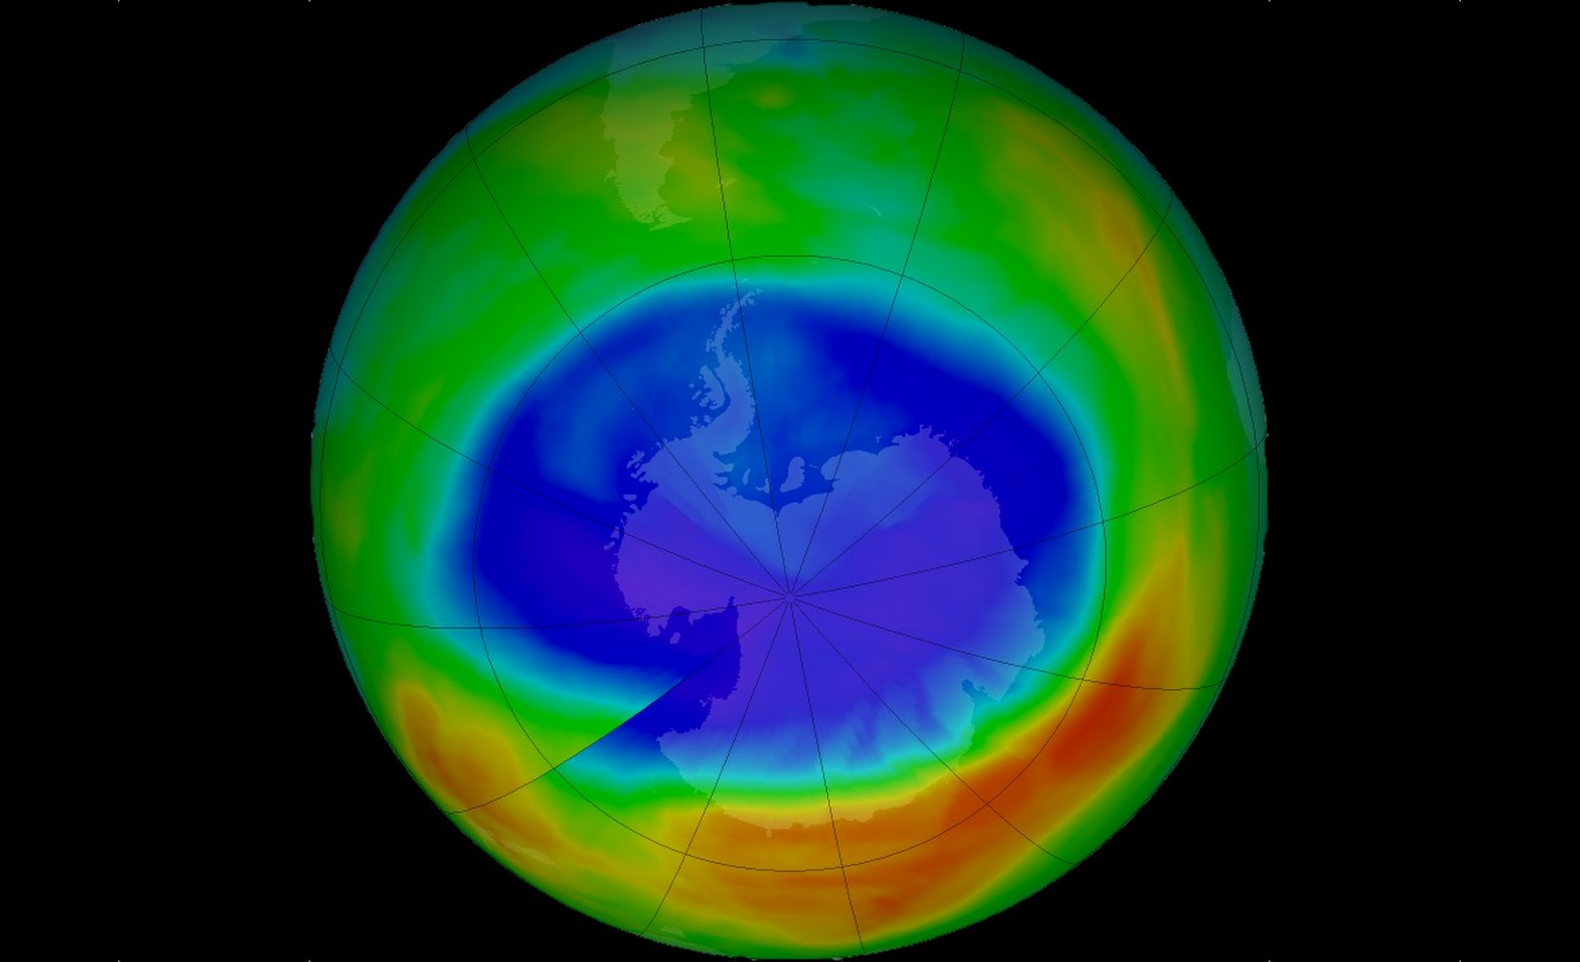 ozone and water vapor